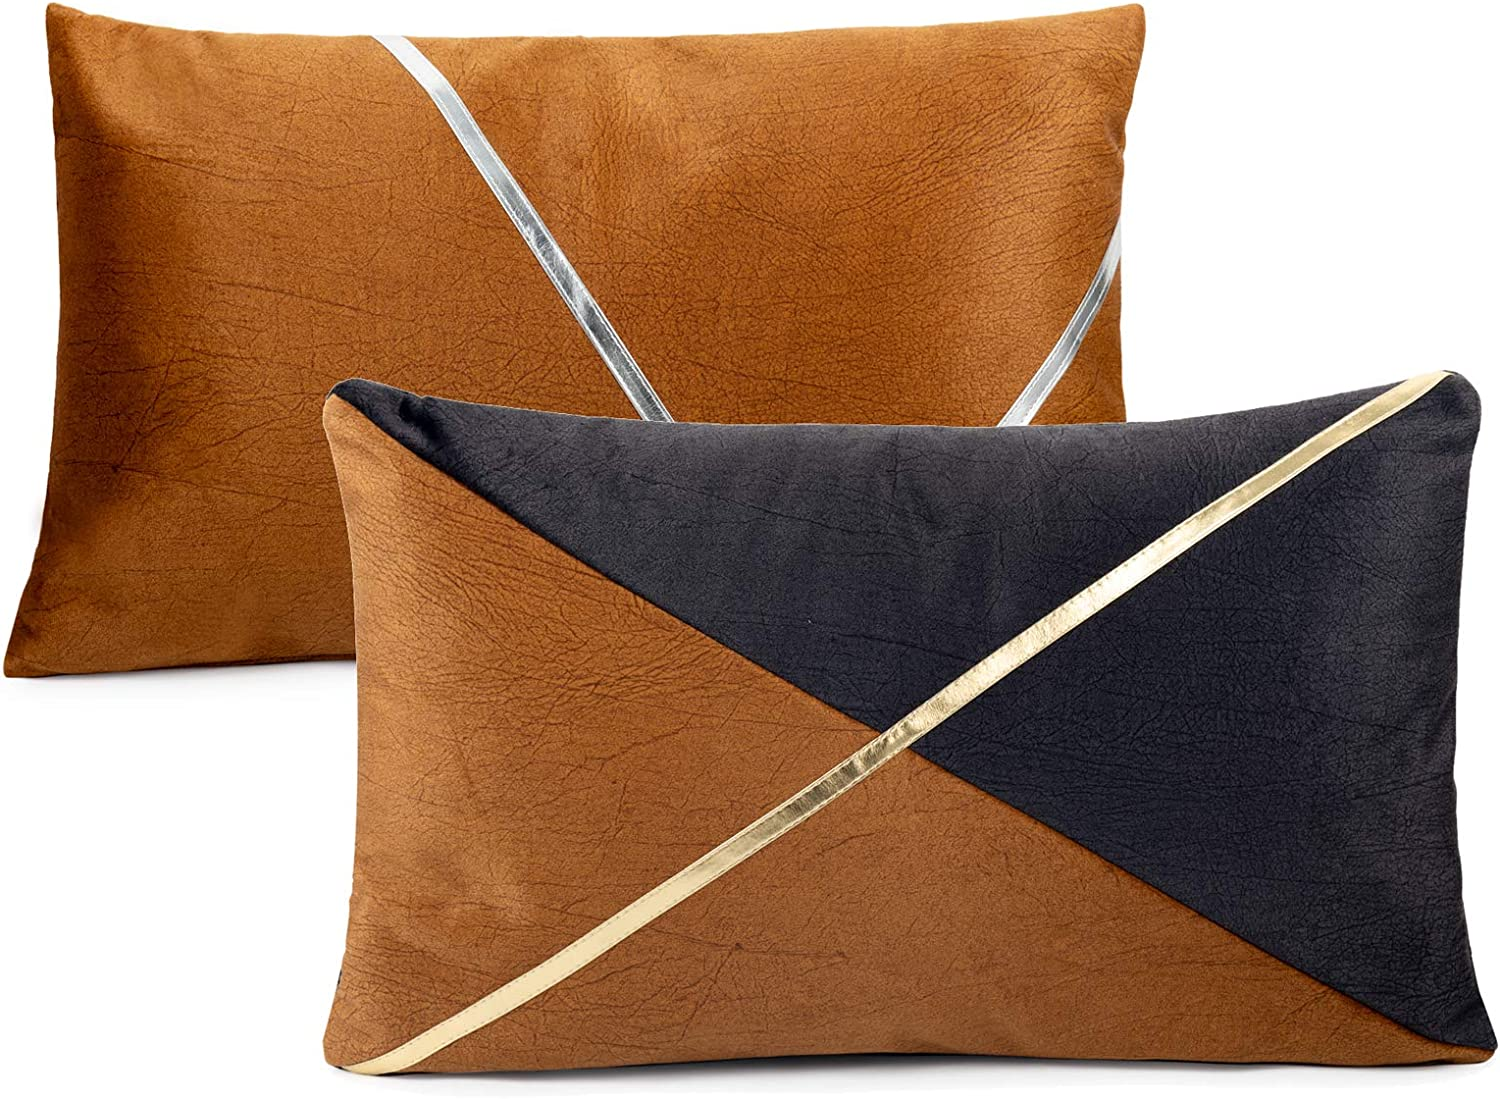 Eiyye 2-Pieces Brown Stitching Pillow Case Throw Covers Couch Sofa Stripe Faux Leather Entry Lux FarmhouseDecorative Modern Decor 12 x 20 Inches